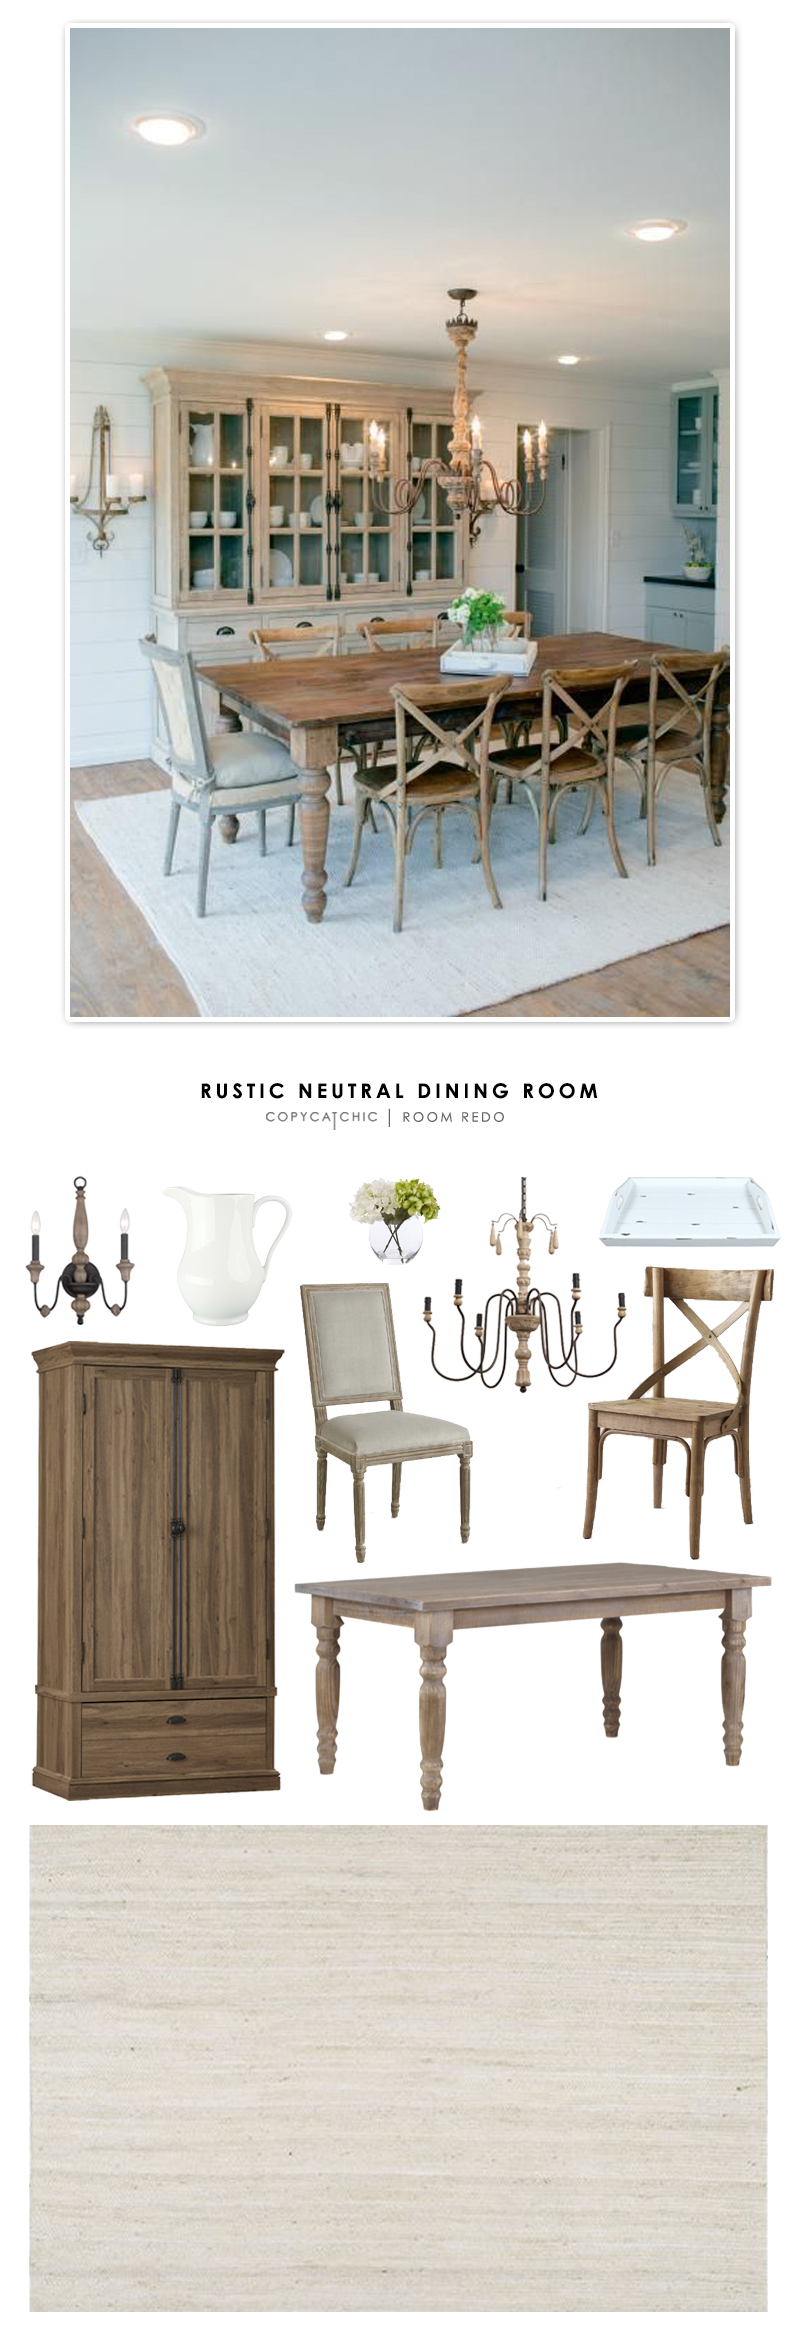 A fixer upper style rustic neutral dining room recreated for less by Copy Cat Chic.